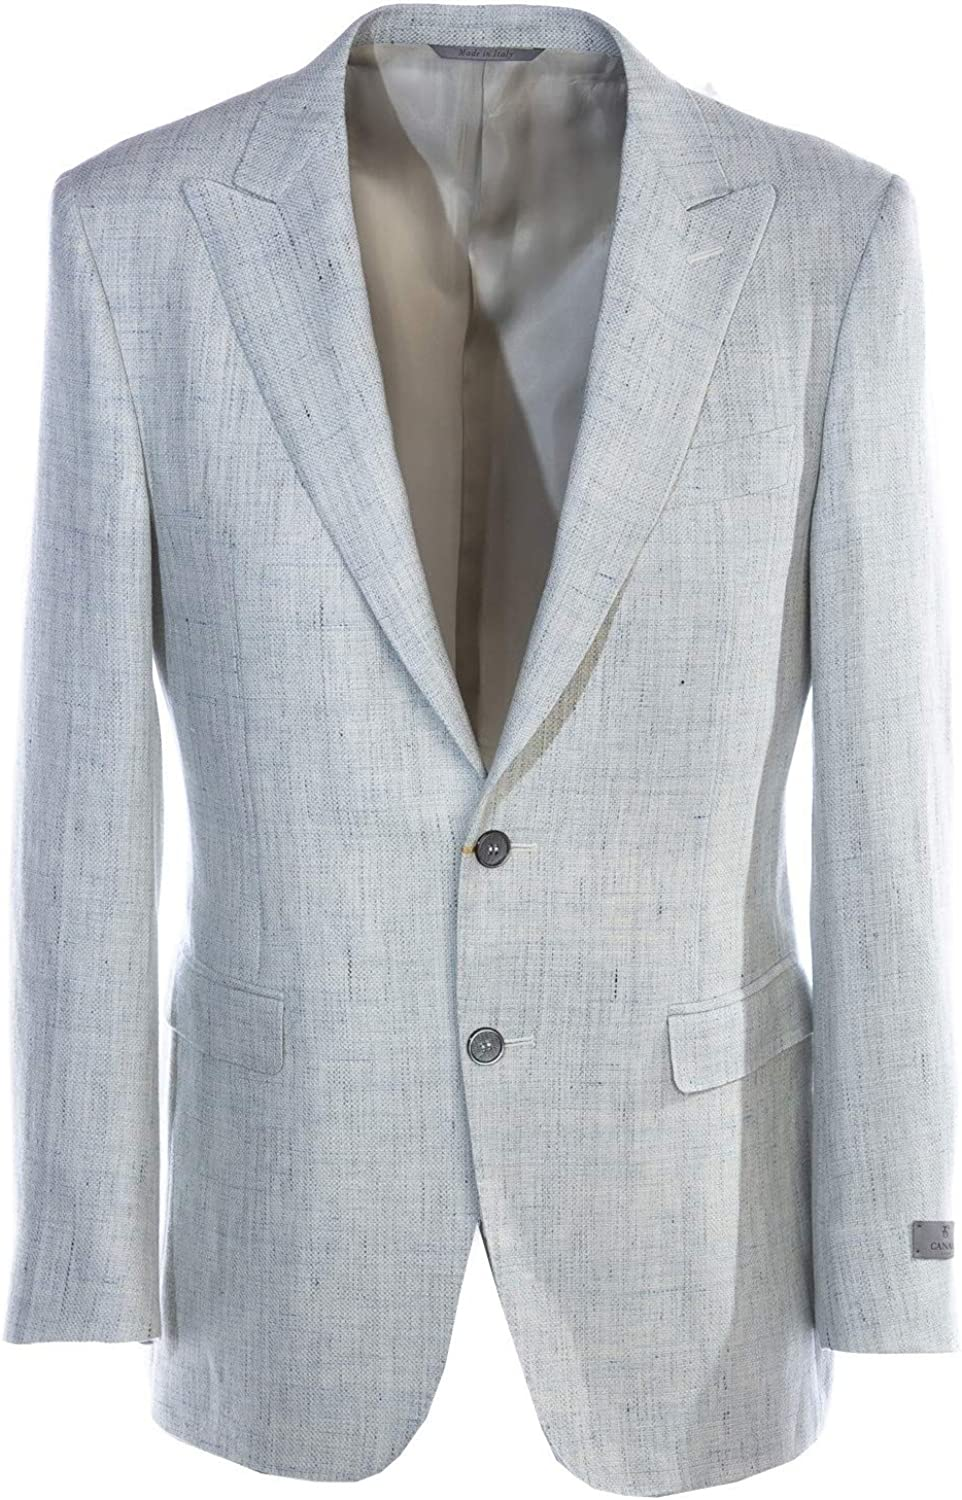 Canali Sky Fleck Jacket in Off White